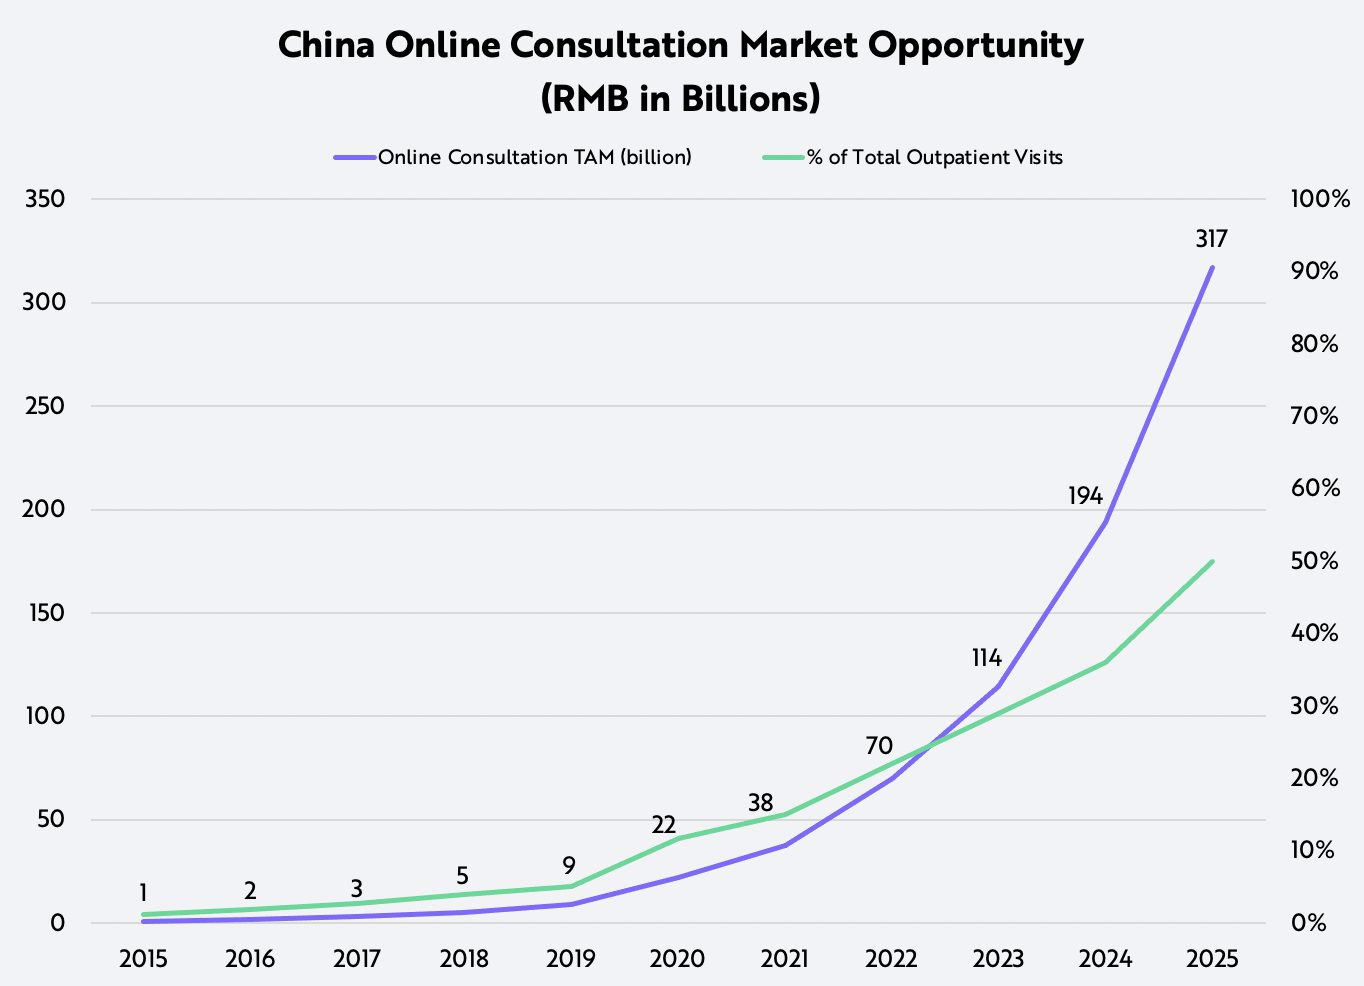 ARK China's Healthcare Online Consultation Opportunity